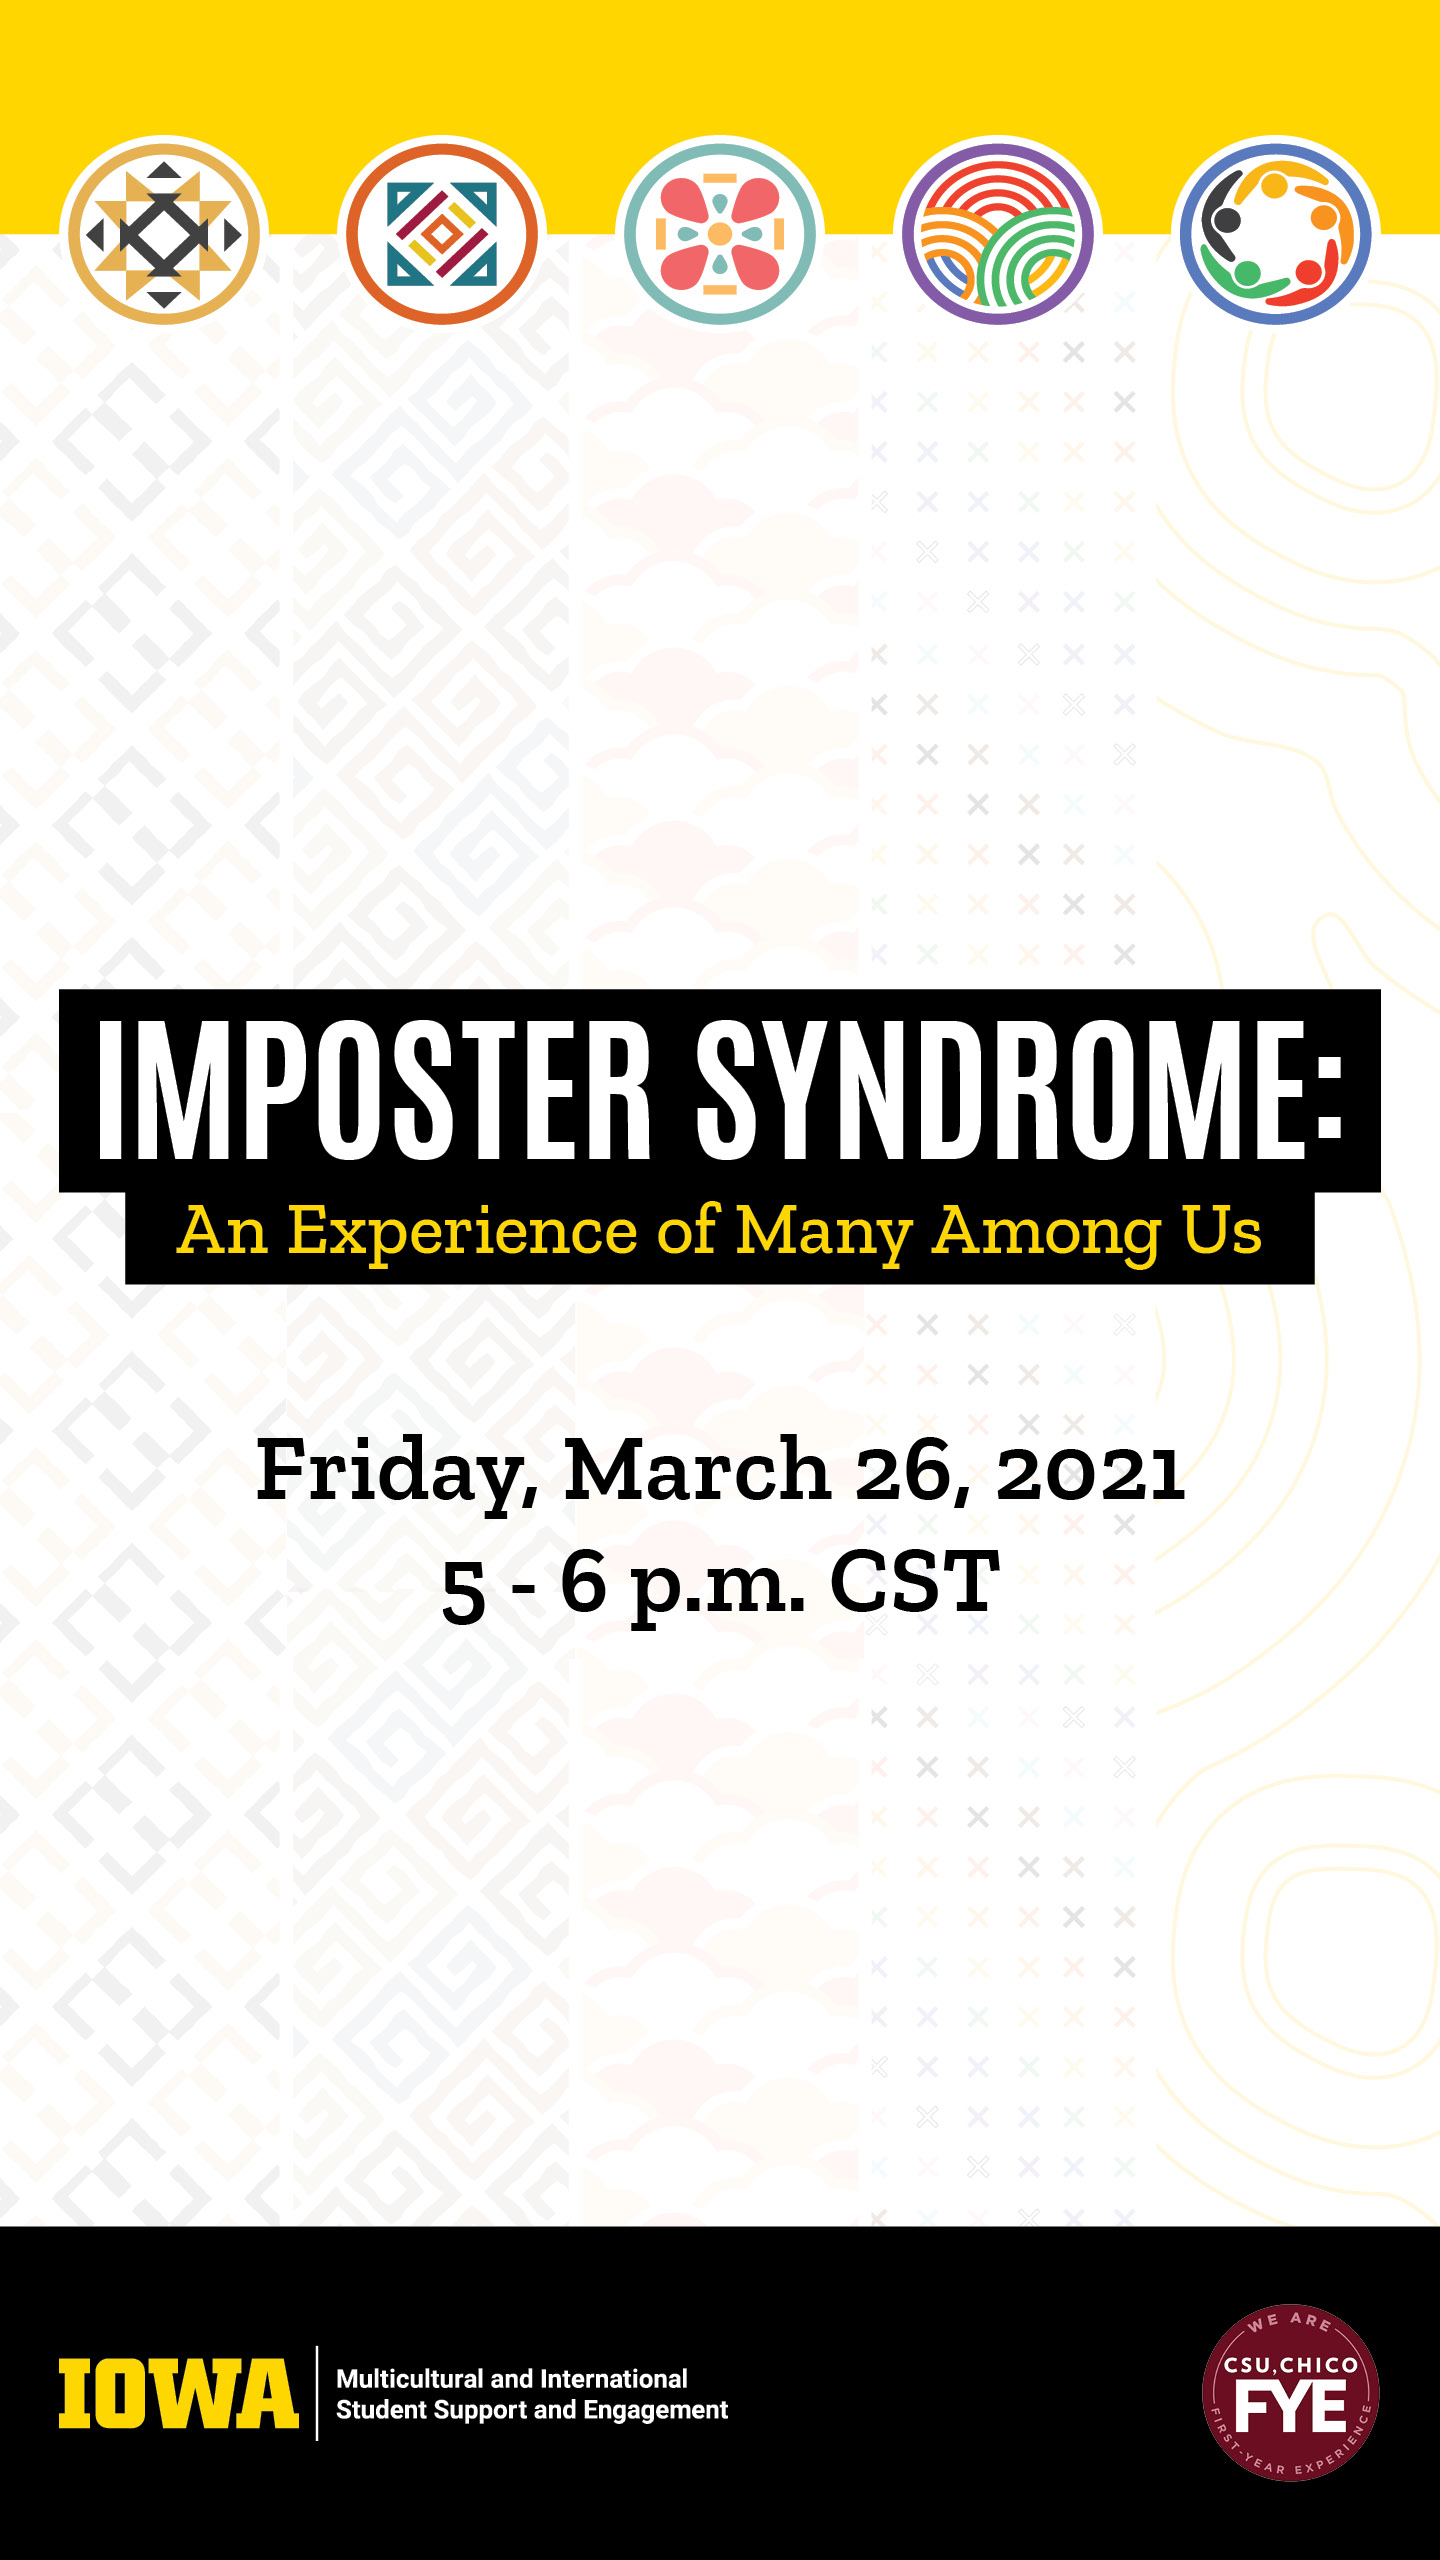 Imposter Syndrome: An Experience of Many Among Us